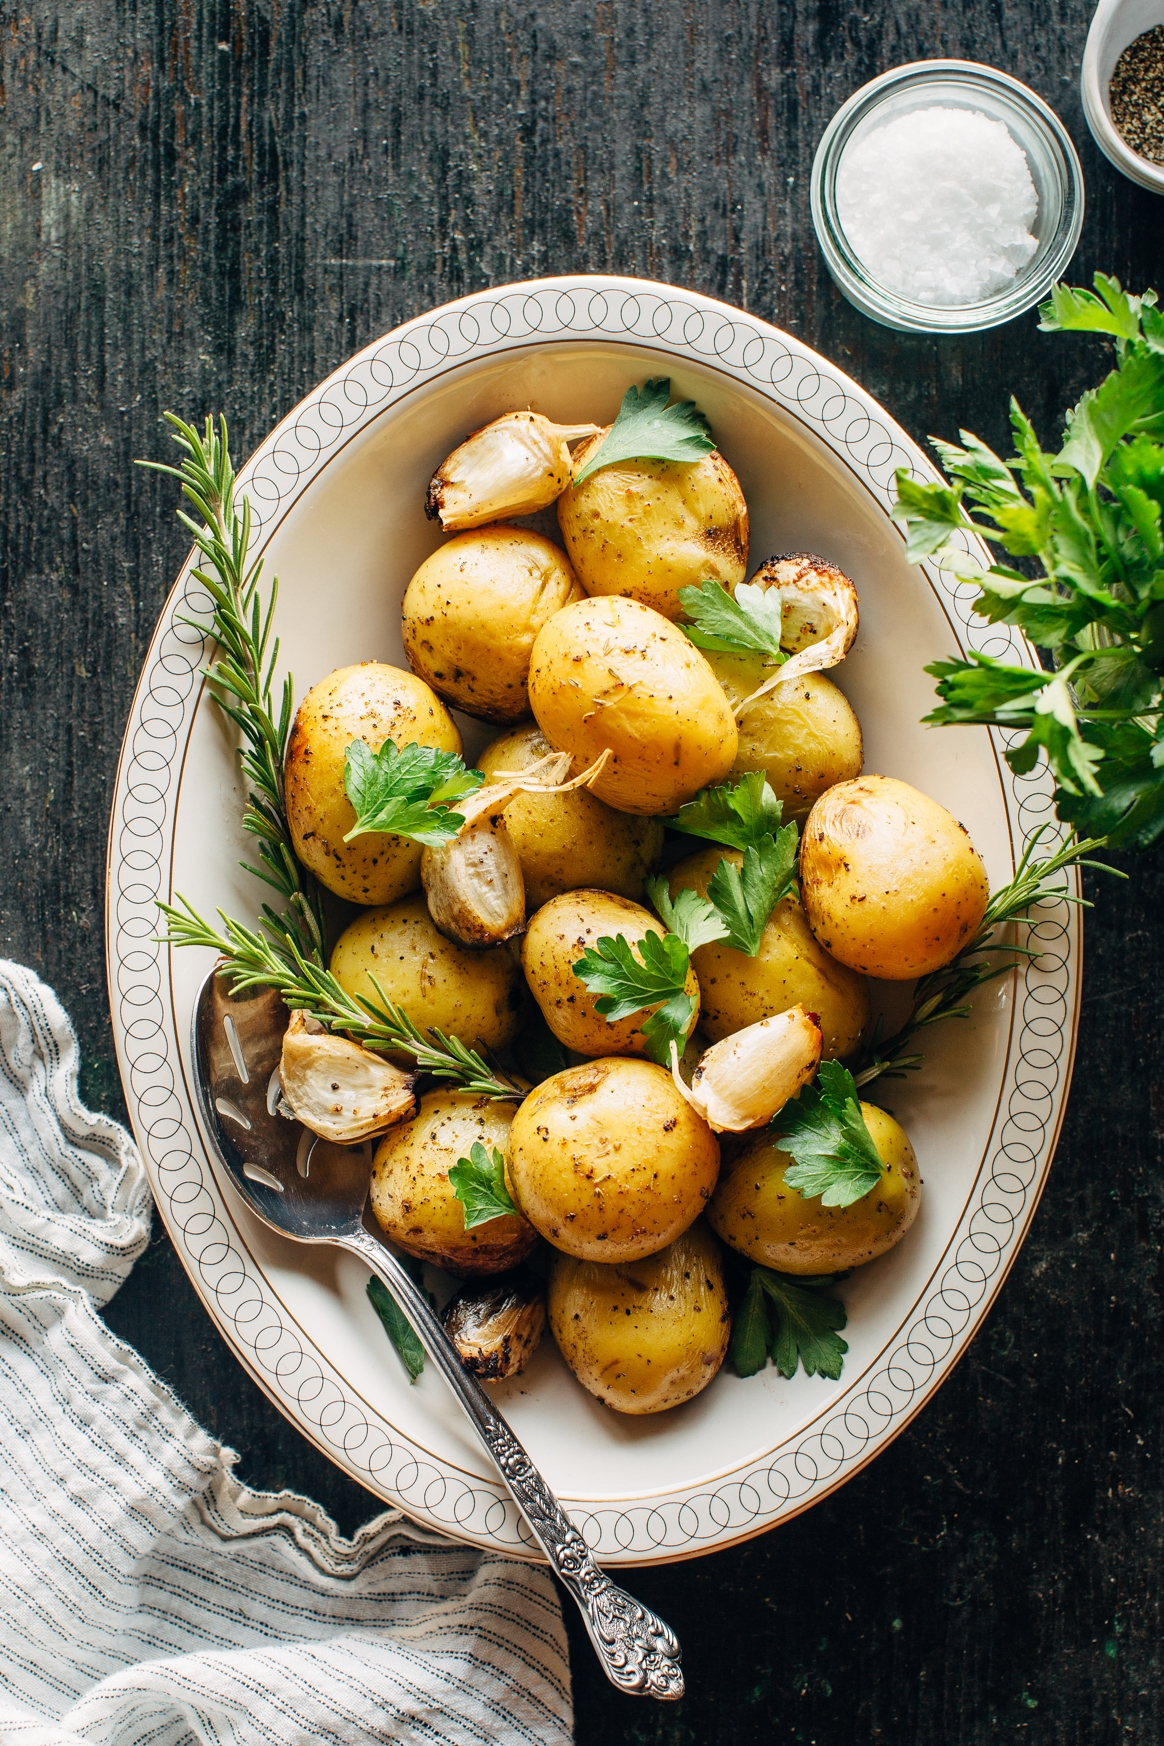 Grilled Potatoes with Garlic and Herbs